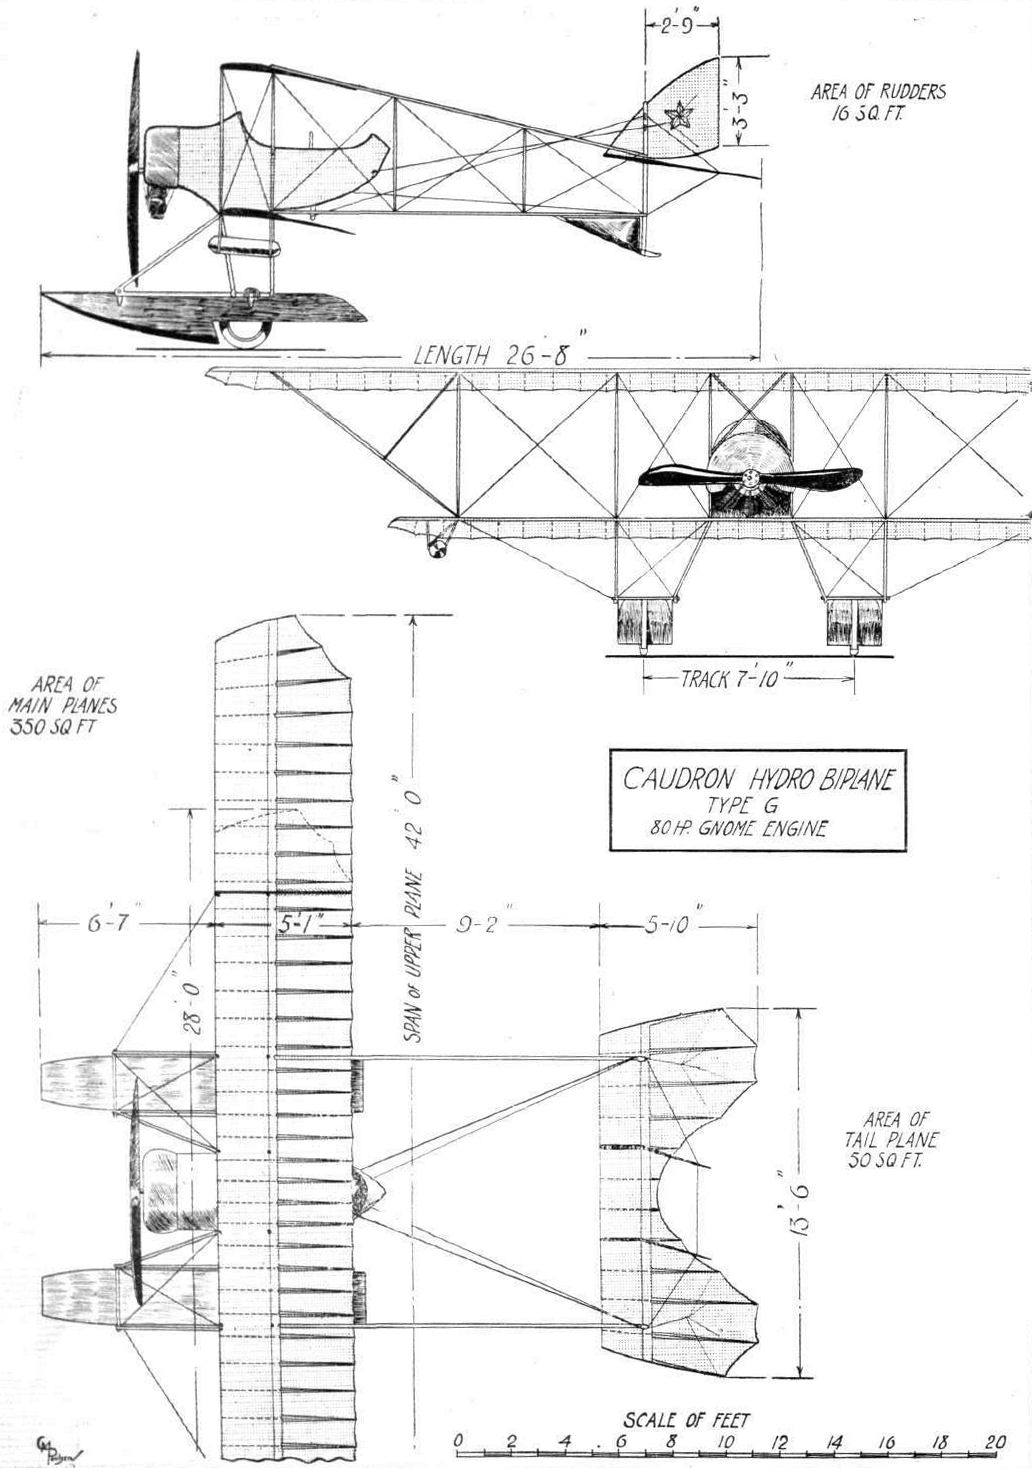 Caudron Type J blueprint